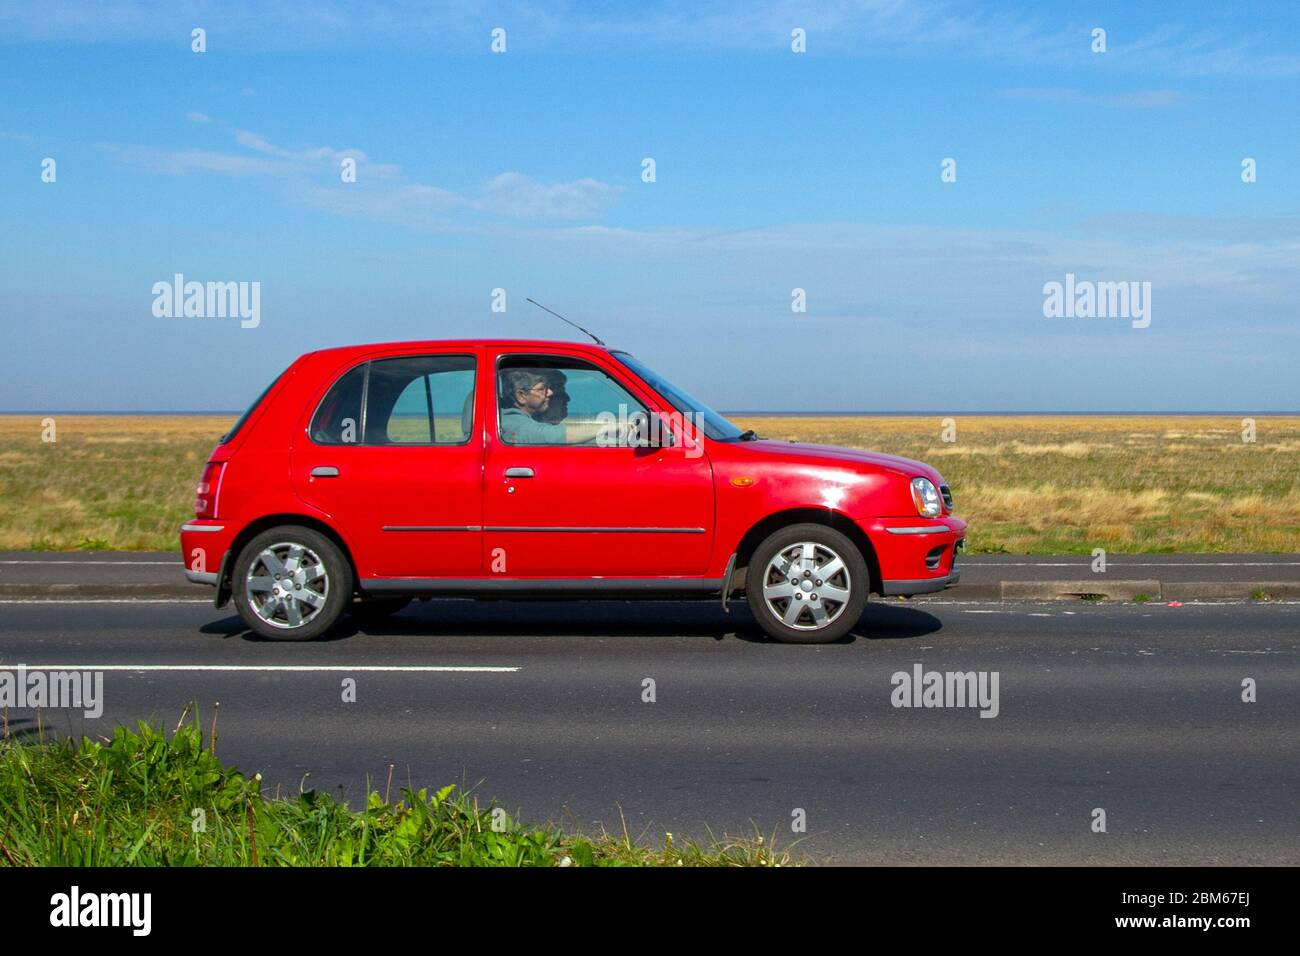 Page 2 Red Nissan High Resolution Stock Photography And Images Alamy